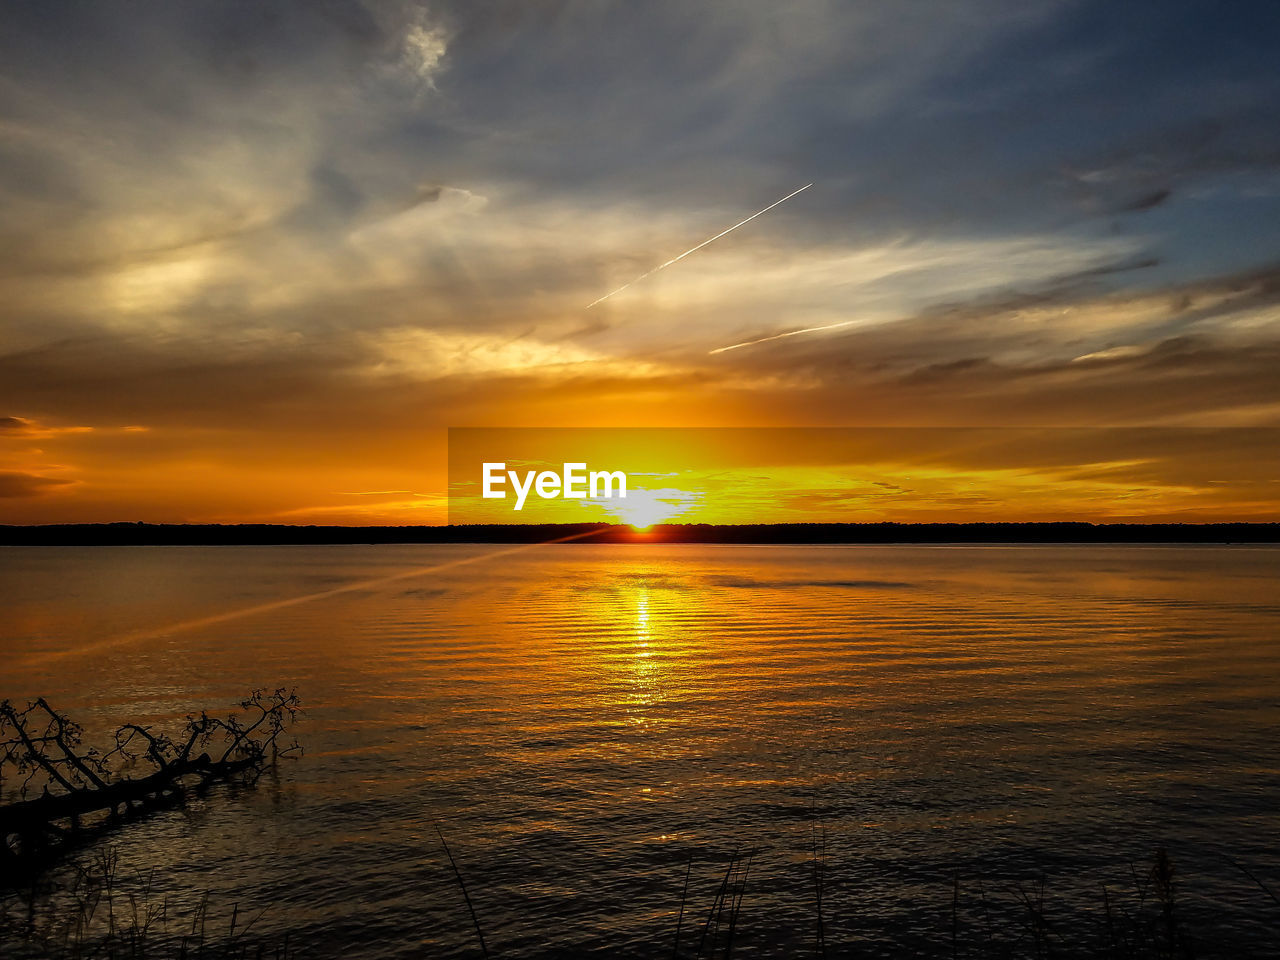 sunset, scenics, nature, sky, beauty in nature, orange color, tranquility, tranquil scene, cloud - sky, sun, water, sea, idyllic, no people, outdoors, horizon over water